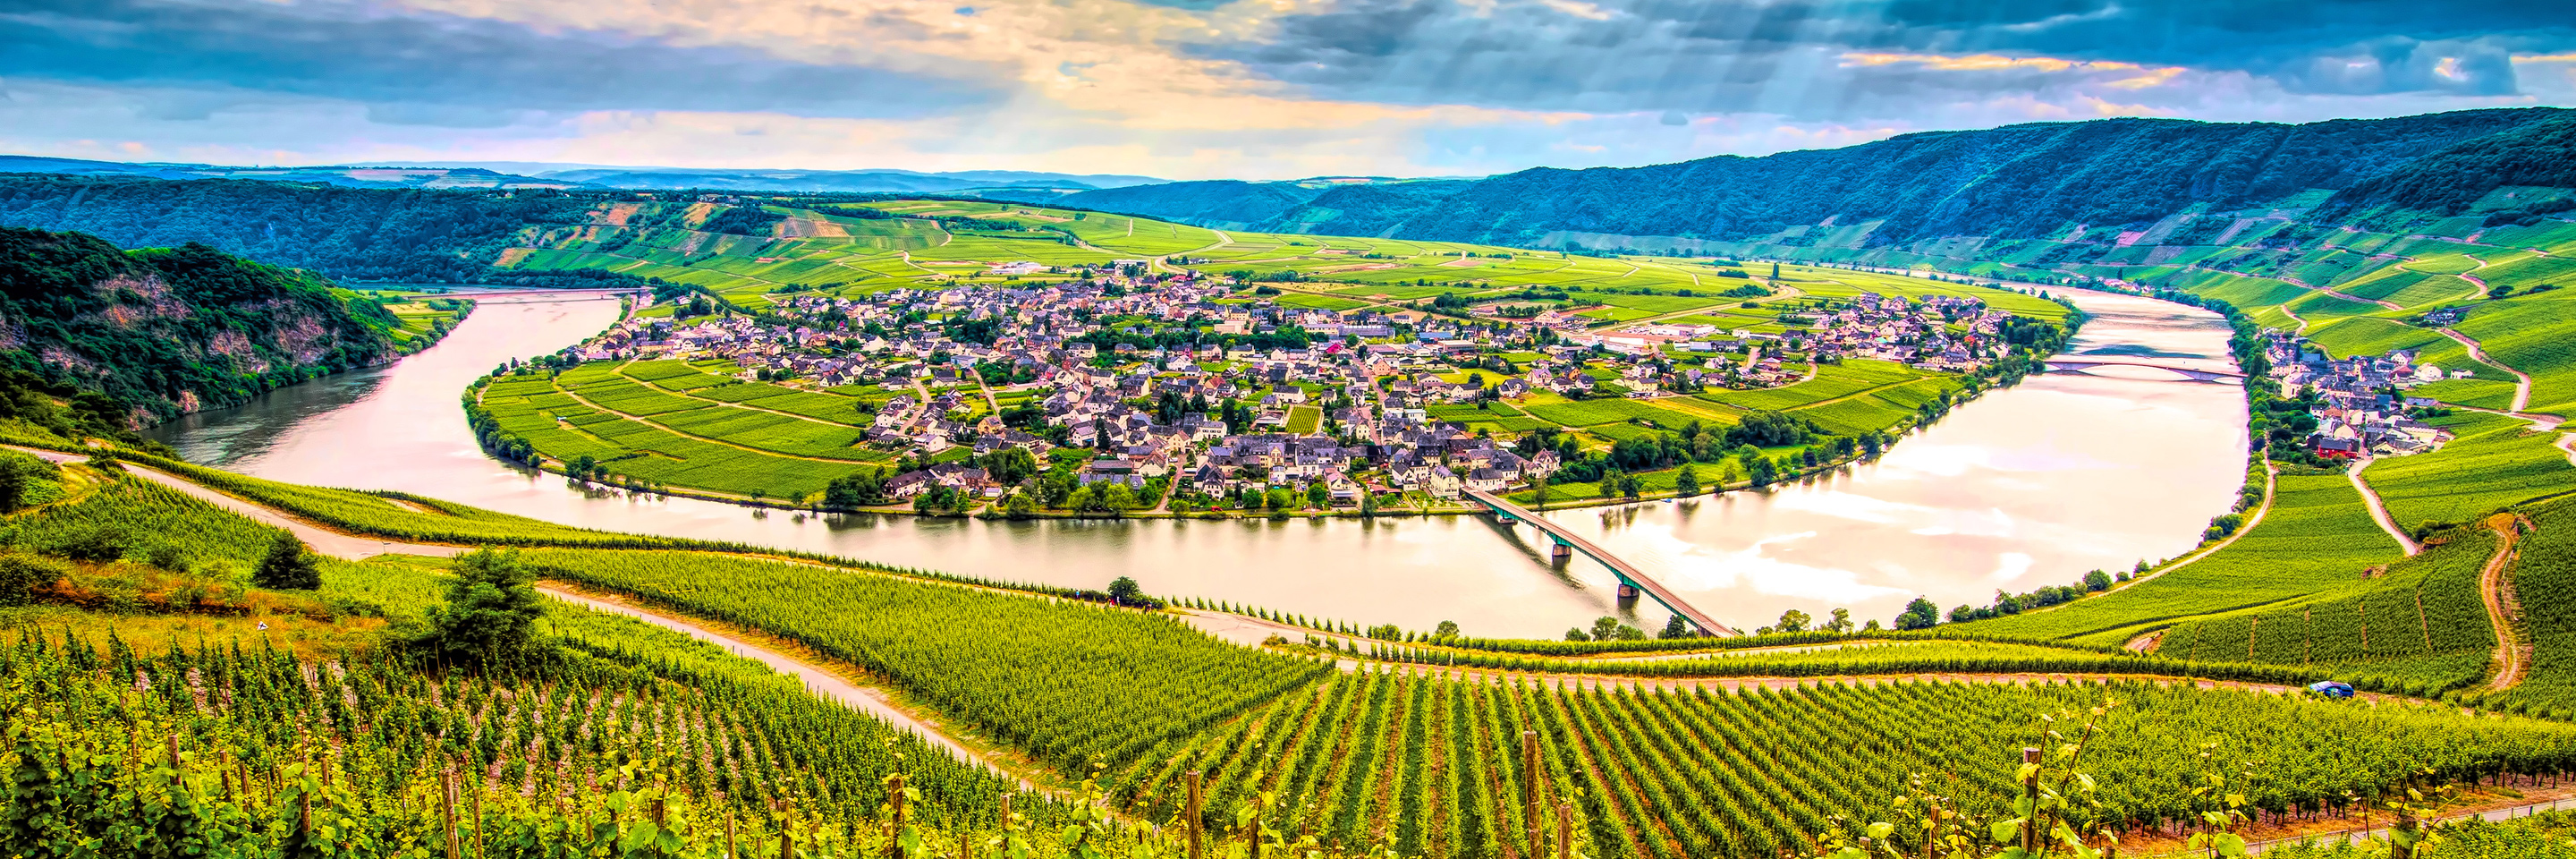 The Rhine & Moselle: Canals, Vineyards & Castles